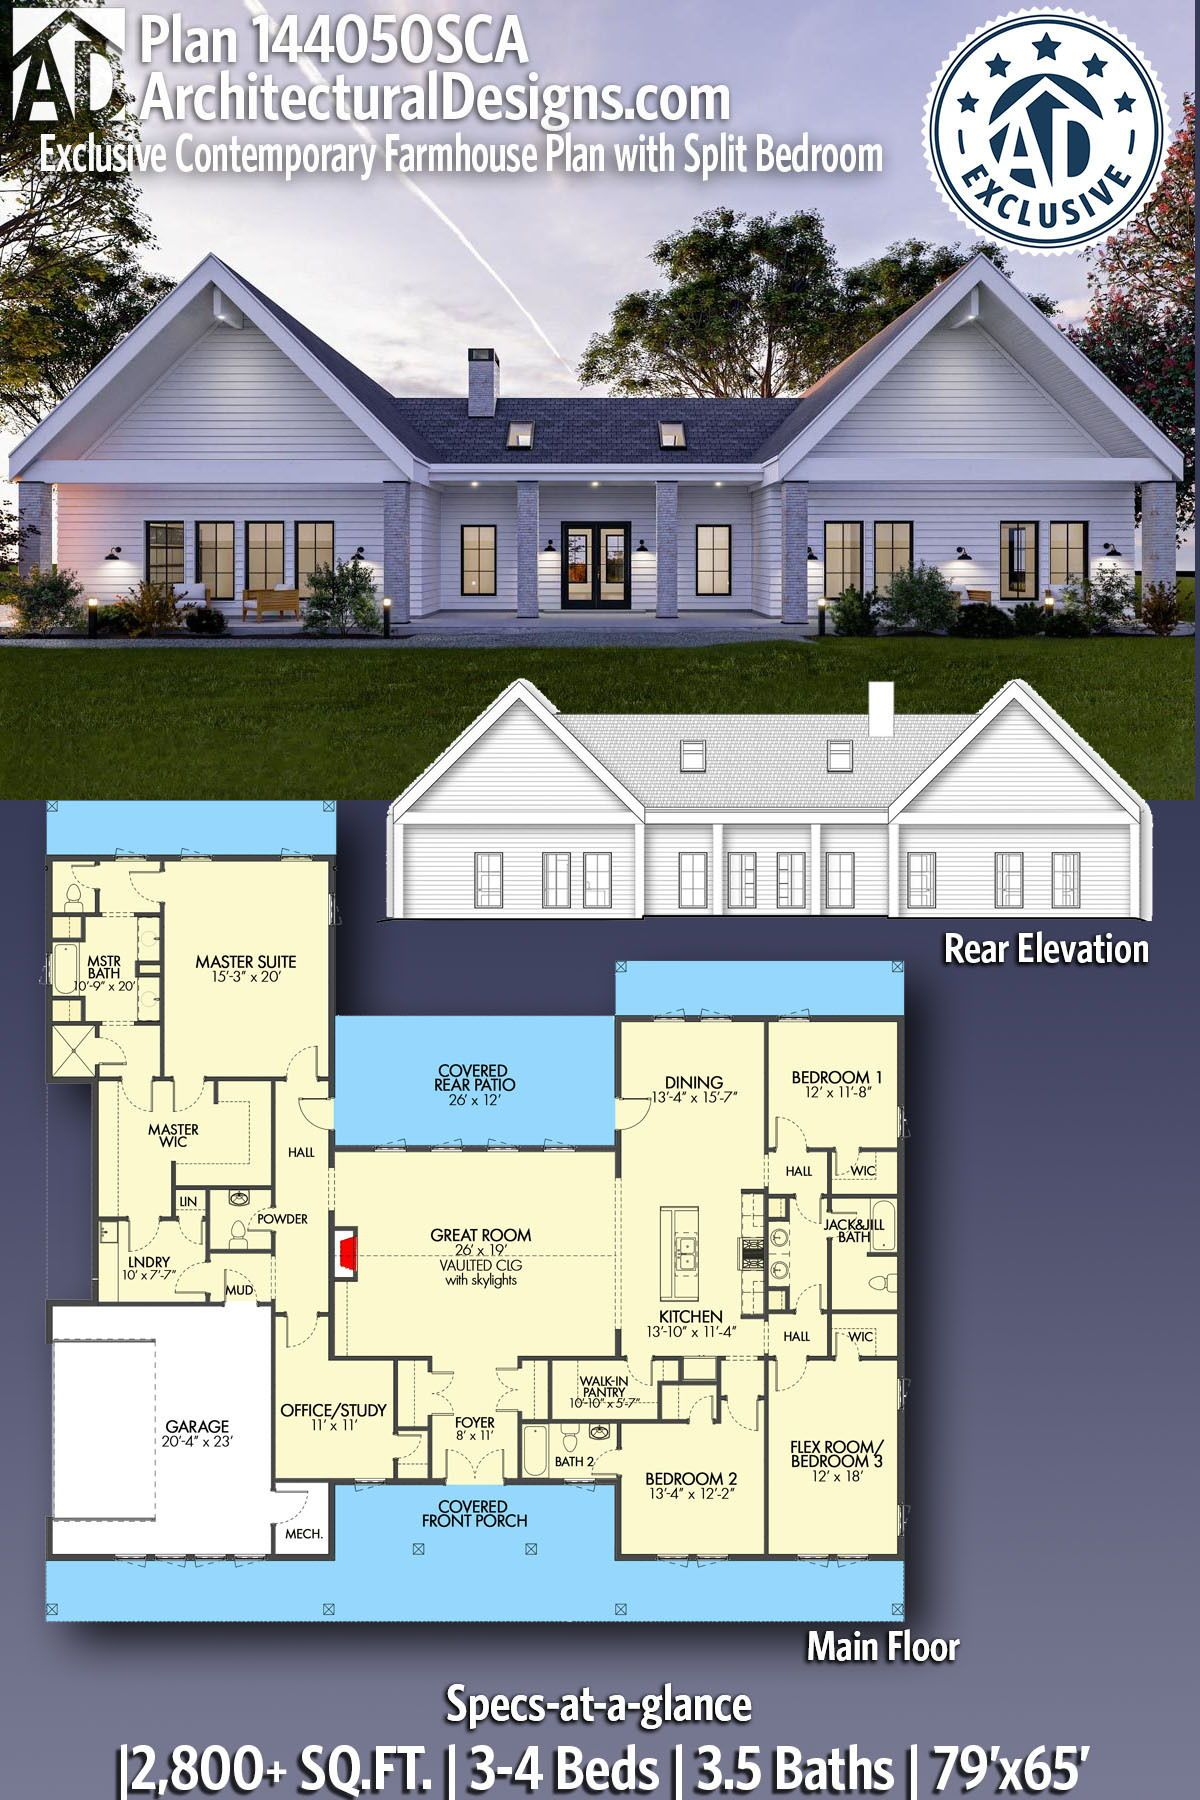 Plan 144050sca Exclusive Contemporary Farmhouse Plan With Split Bedrooms House Plans Farmhouse New House Plans Farmhouse Plans